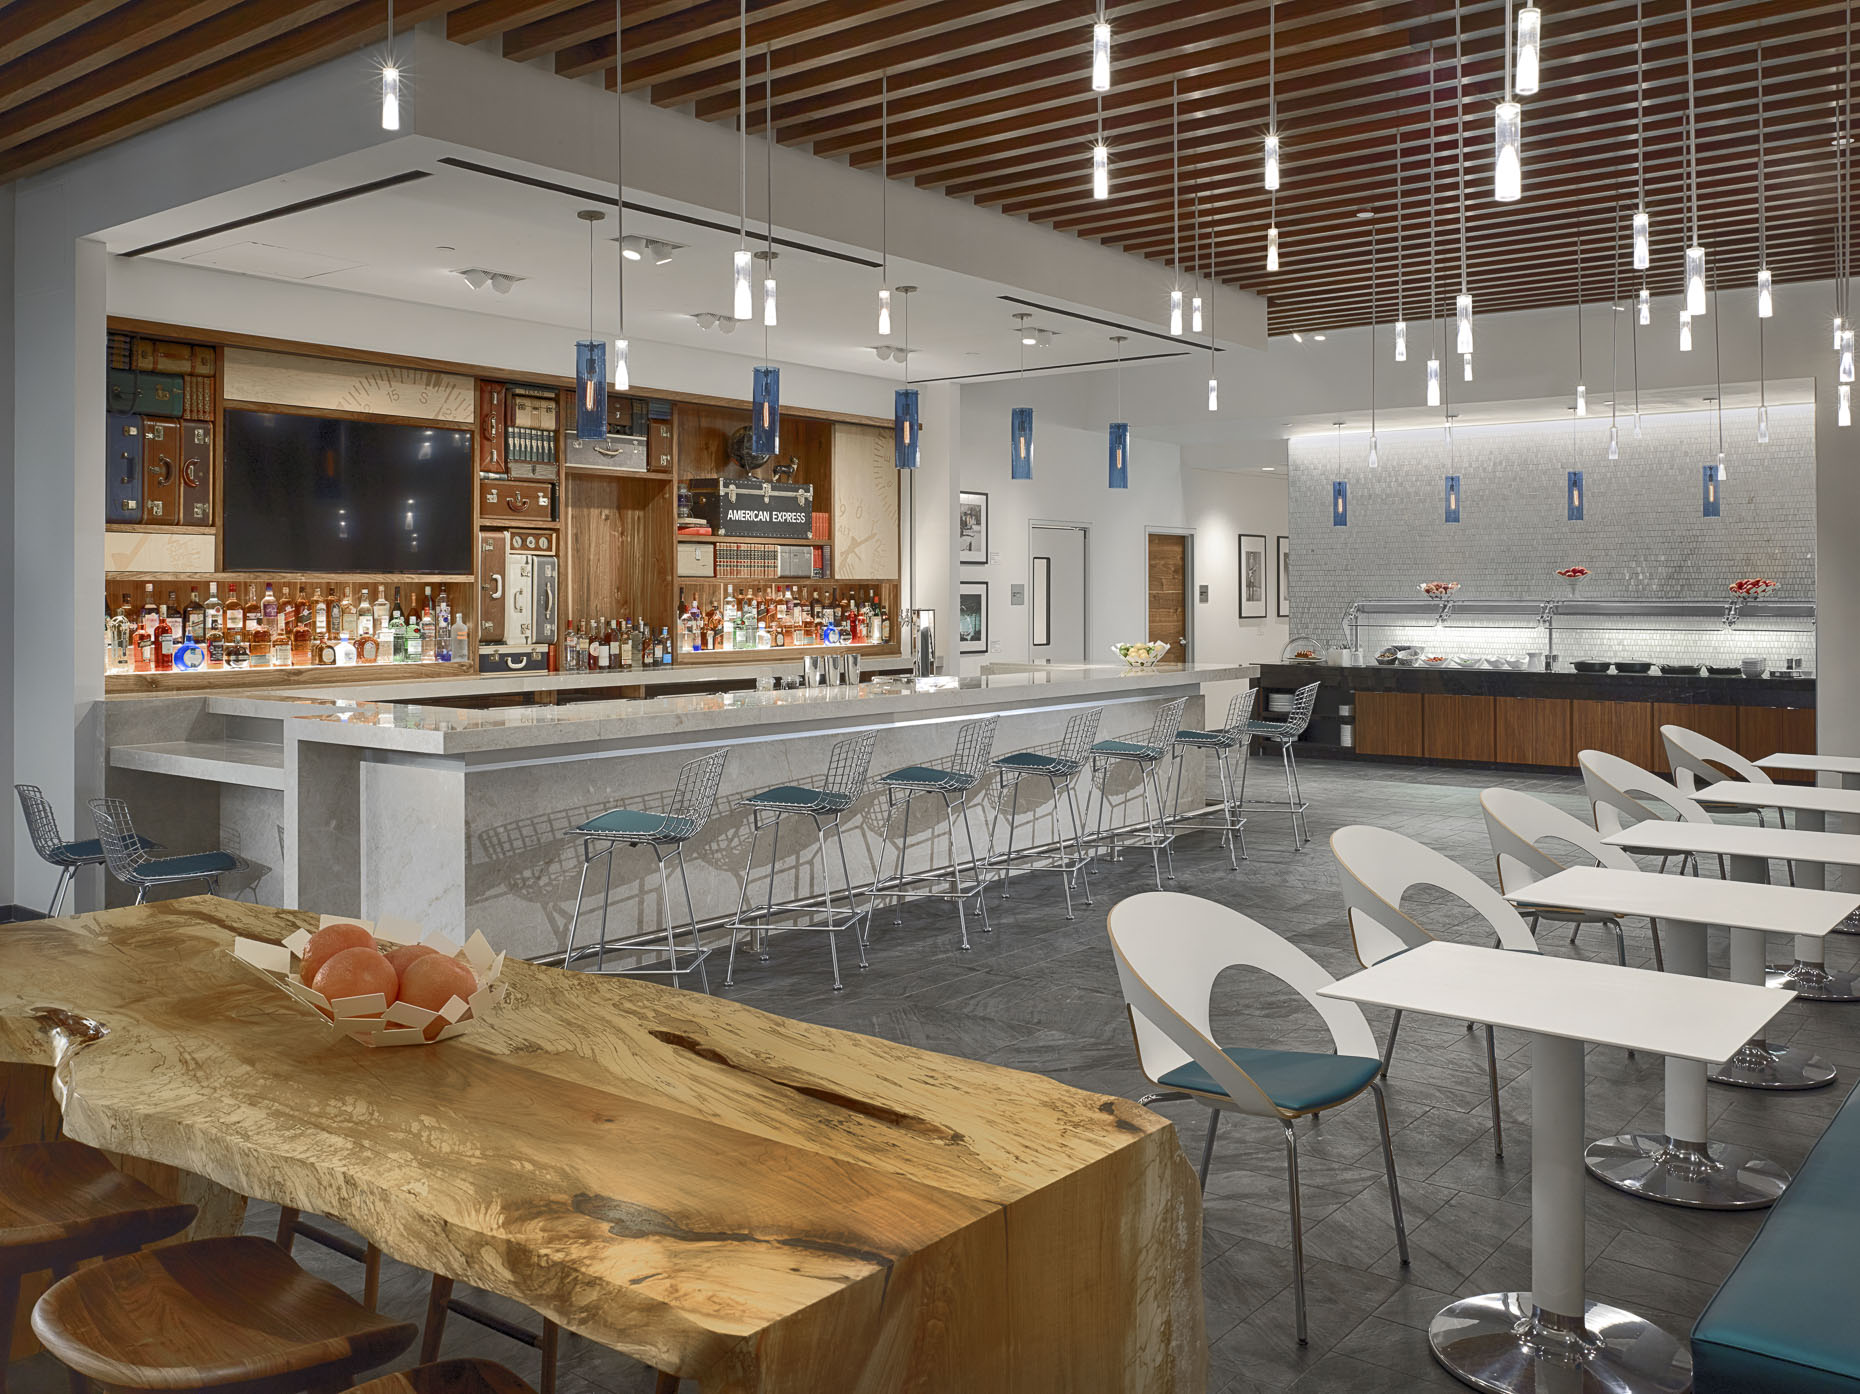 George Bush Intercontinental Airport AMEX Centurion Lounge for American Express photographed by Brad Feinknopf based in Columbus, Ohio